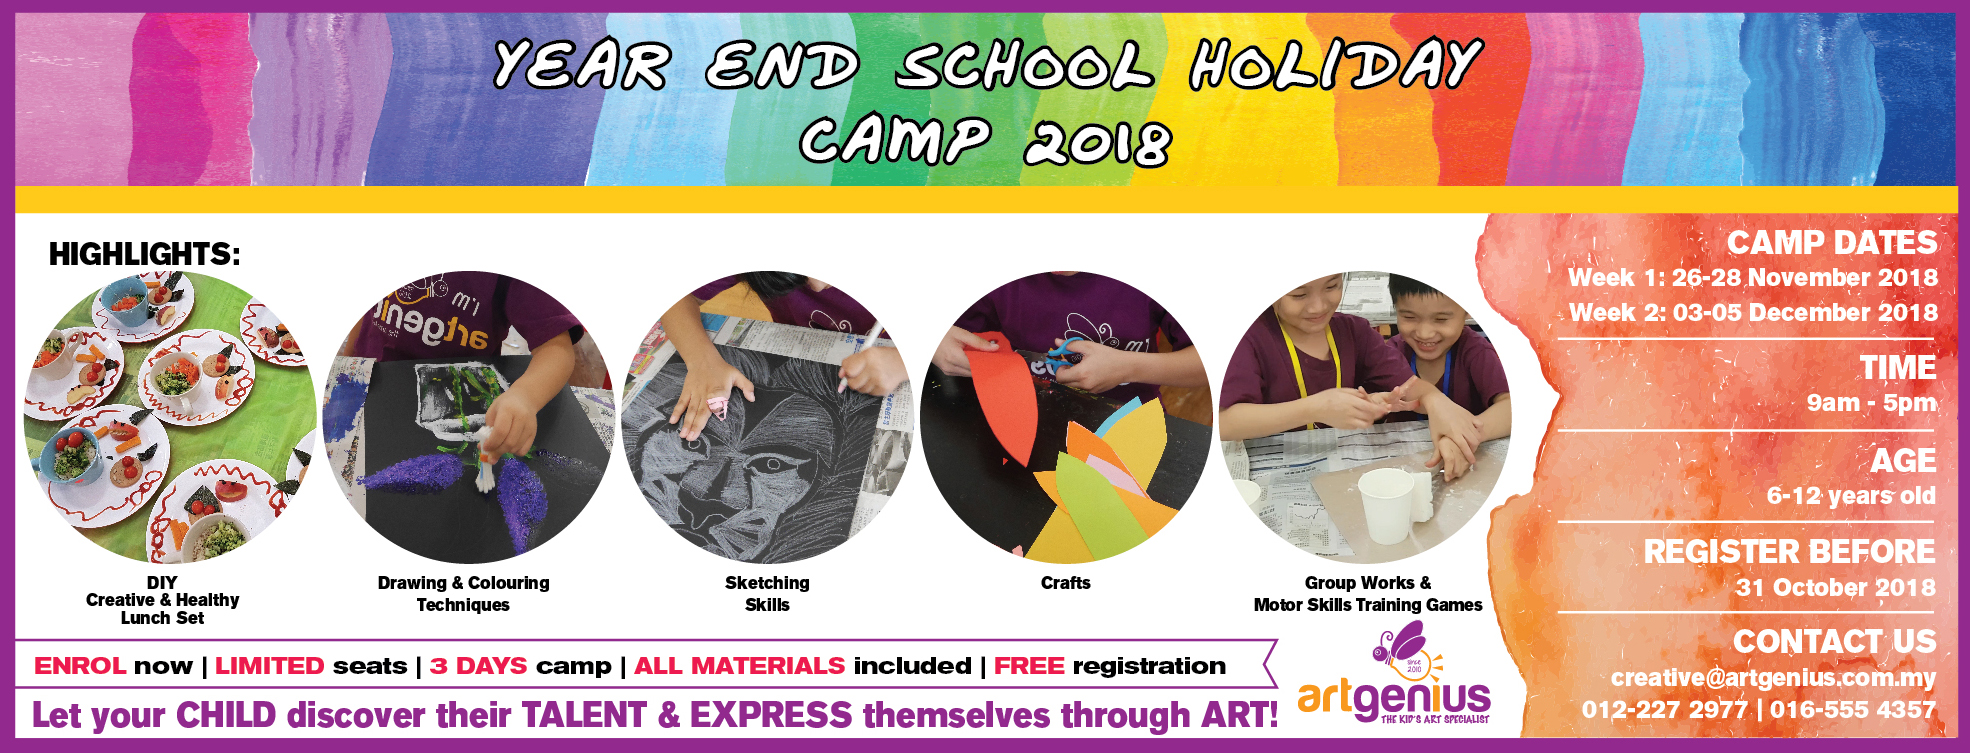 School Holiday Camp Nov-Dec 2018